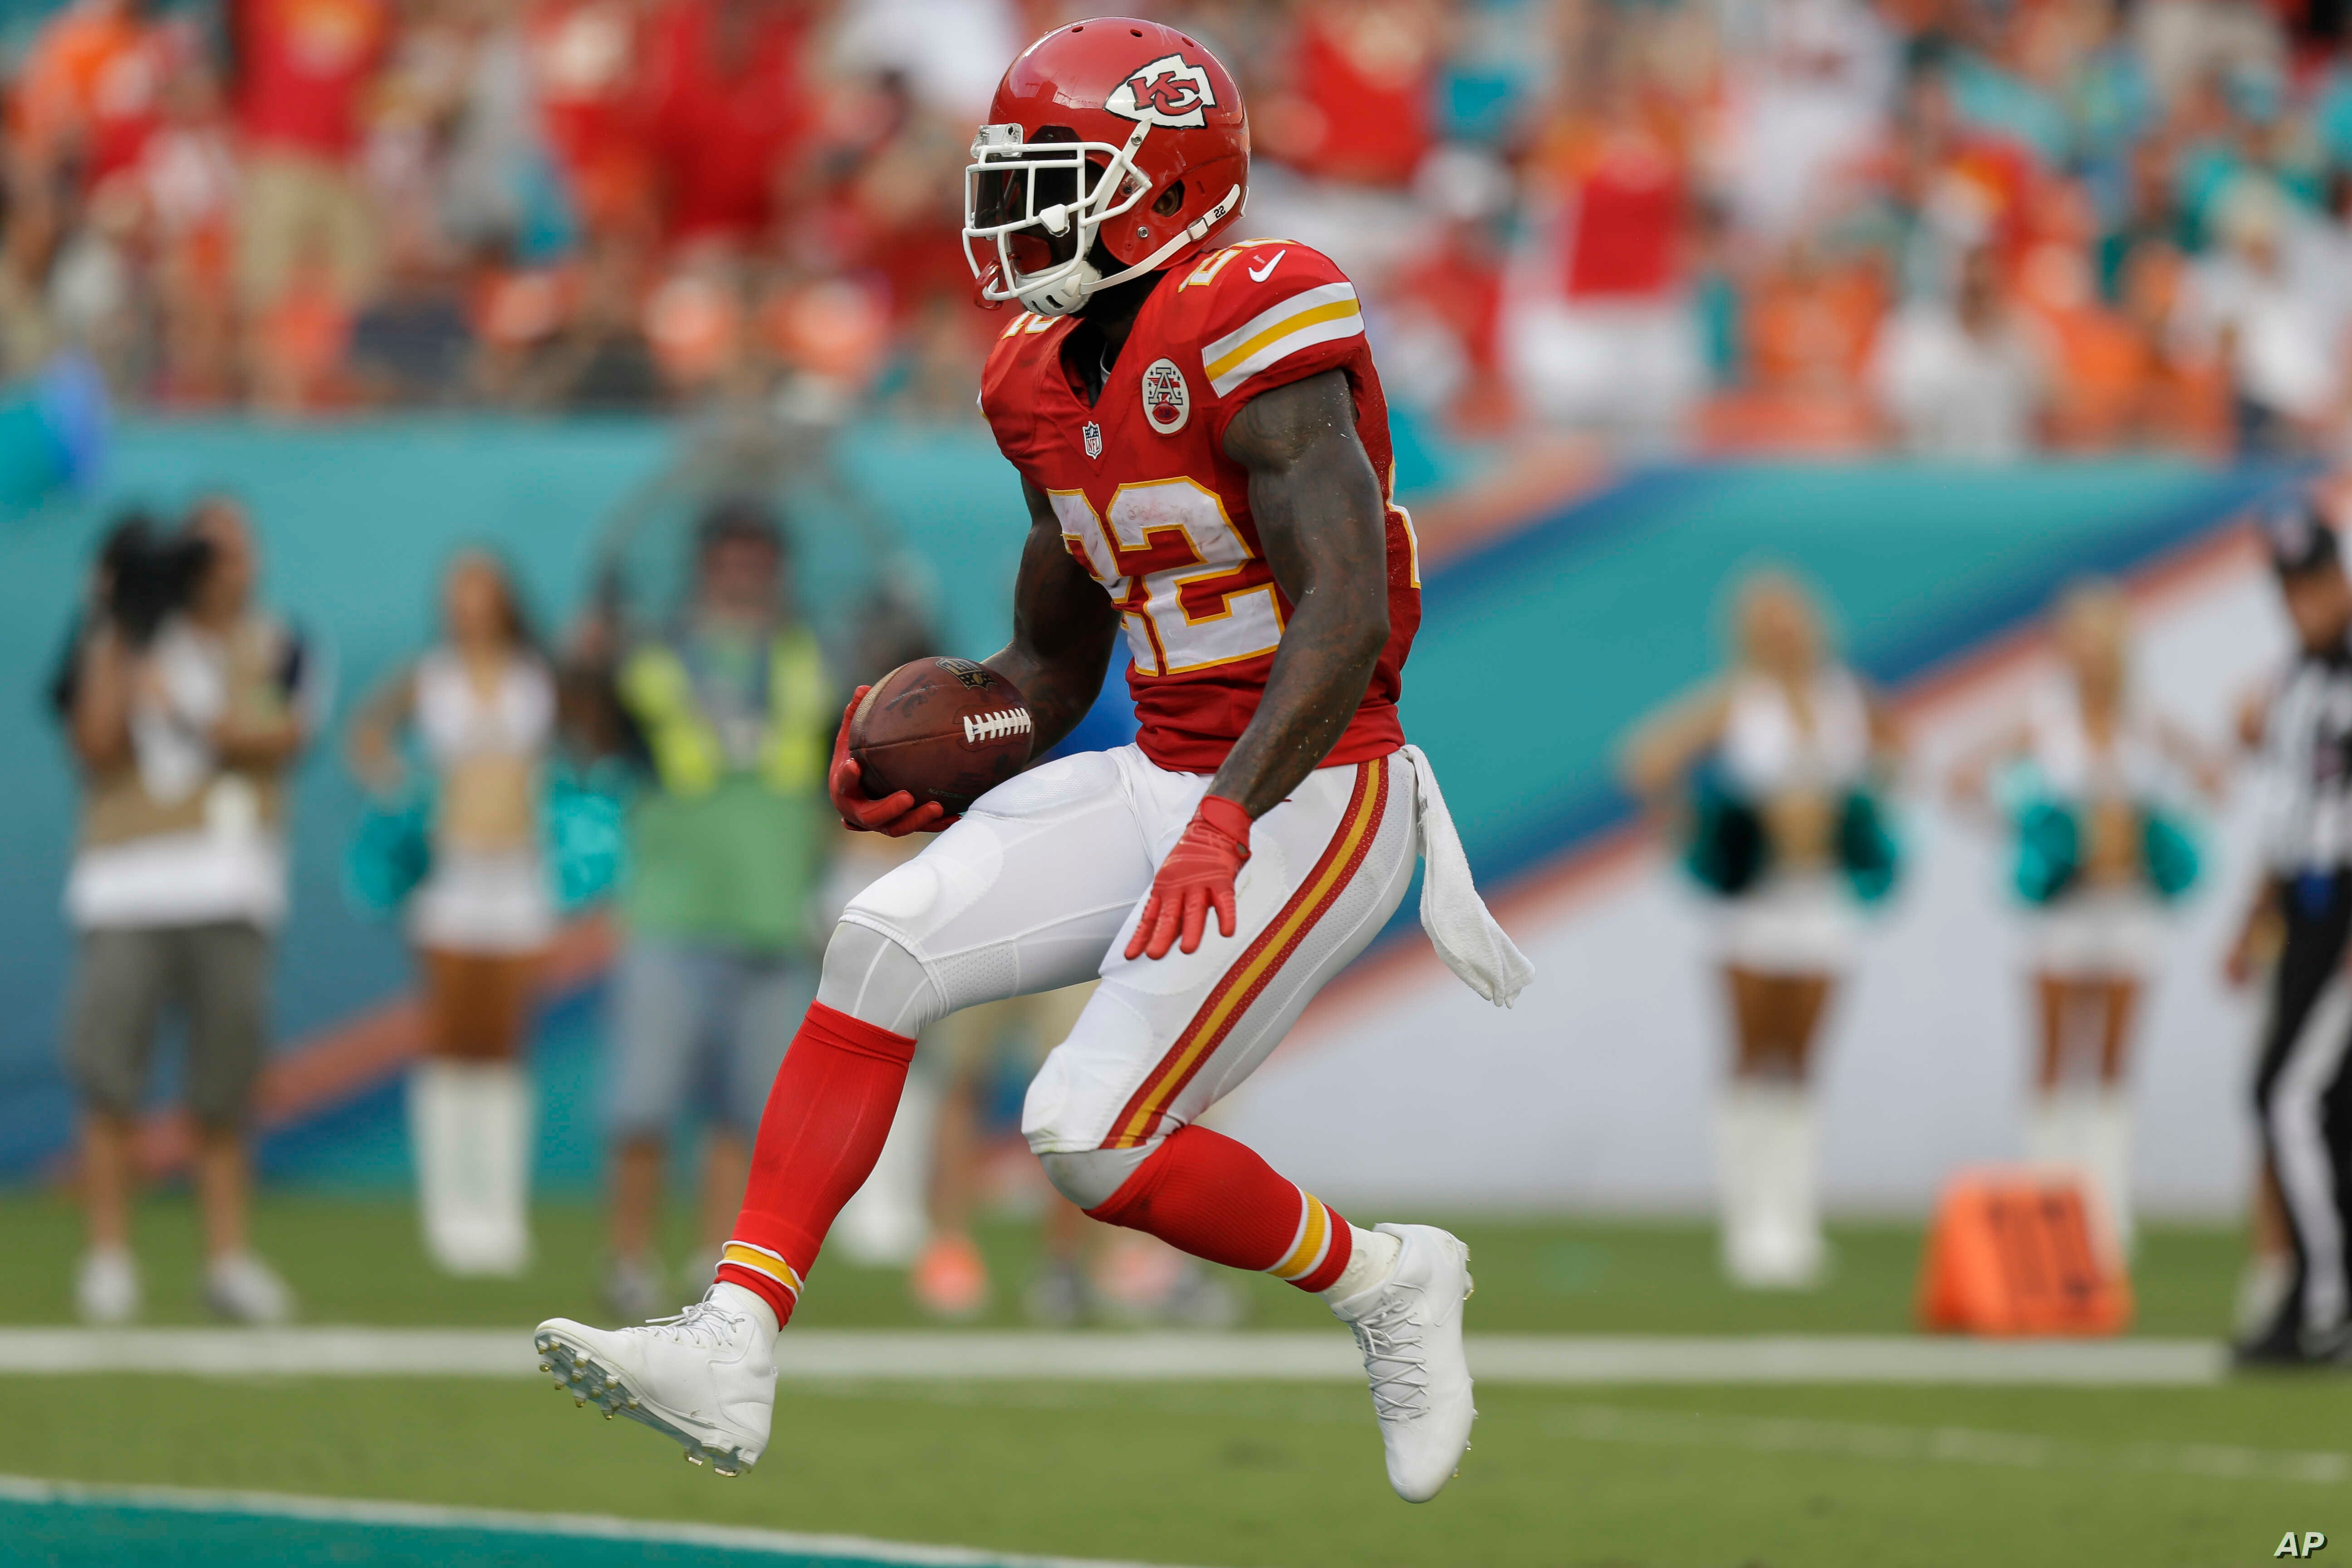 FILE - Then-Kansas City Chiefs running back Joe McKnight (22) scores a touchdown during the second half of an NFL football game against the Miami Dolphins.